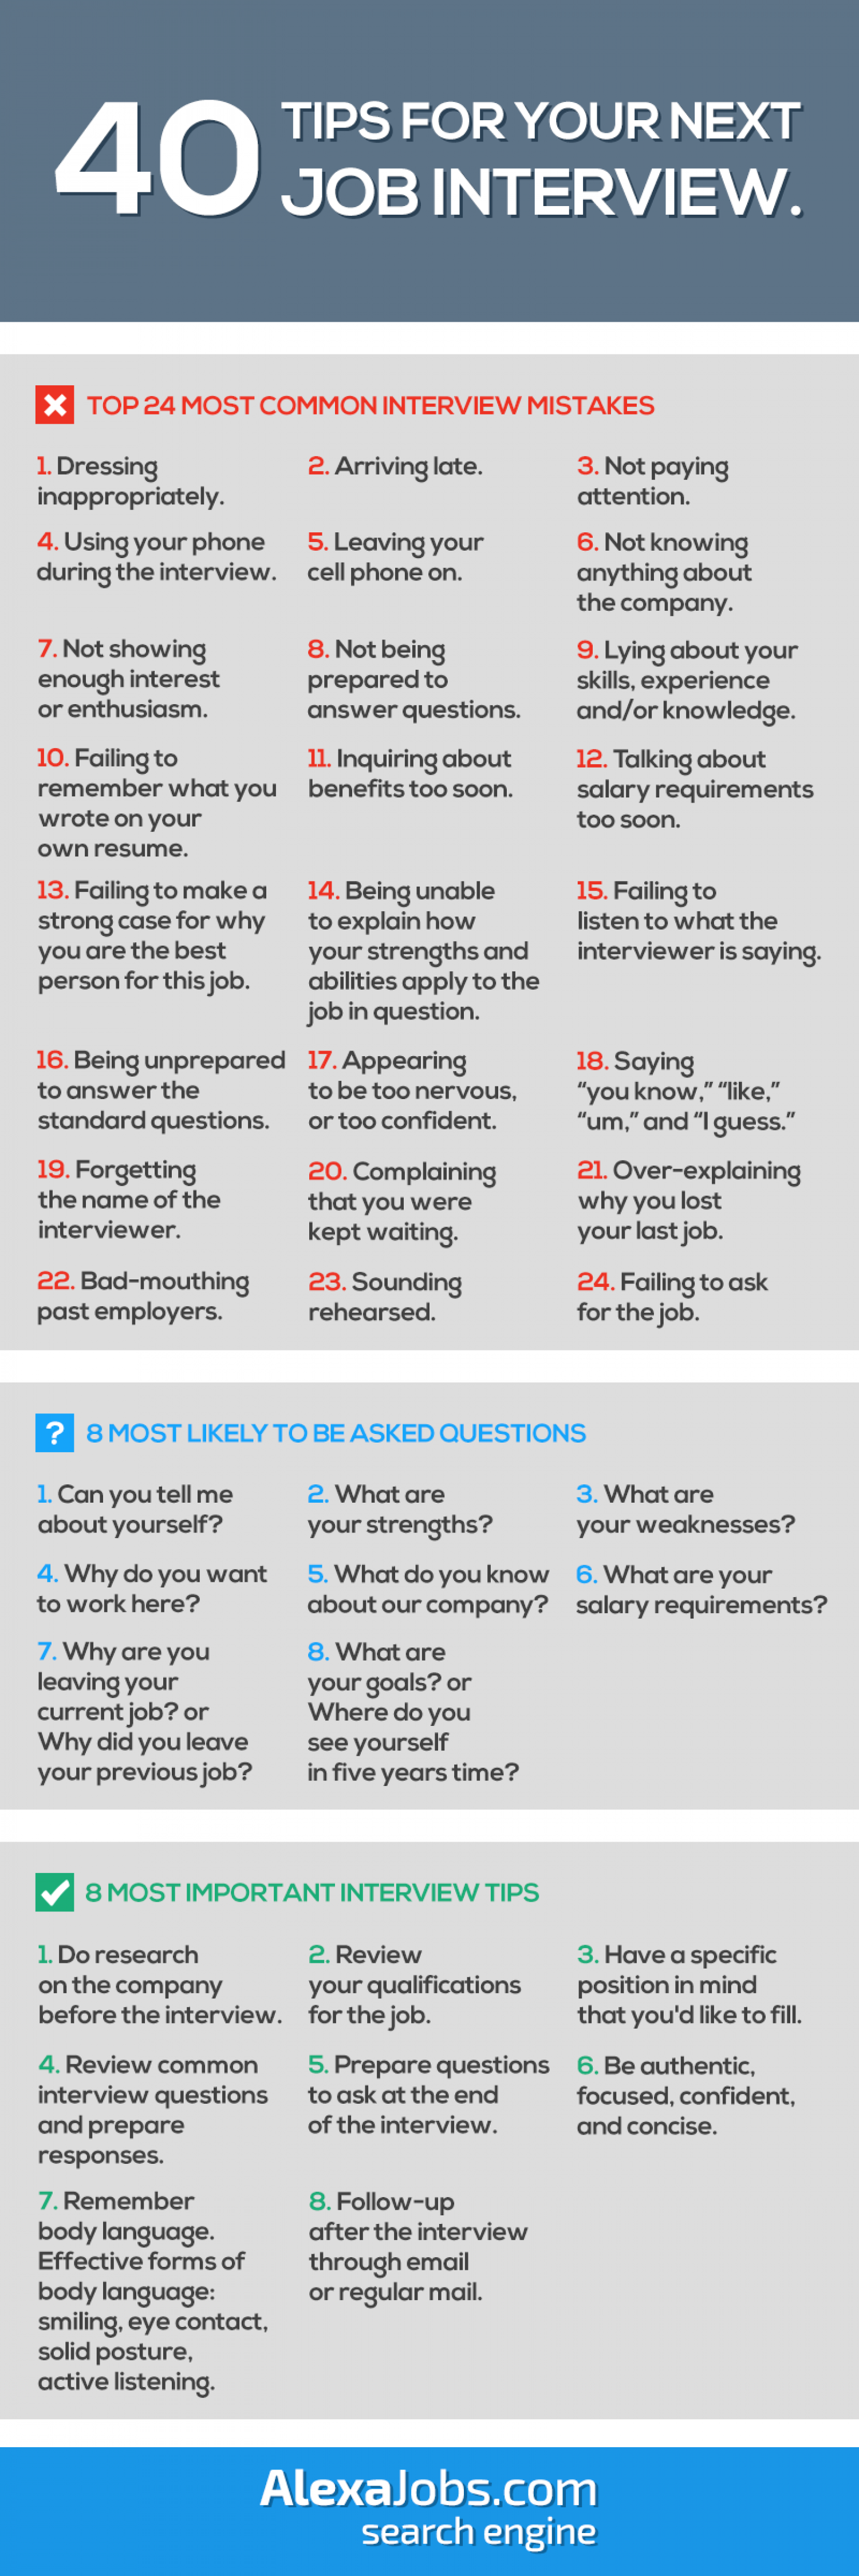 tips for your next job interview ly 40 tips for your next job interview infographic